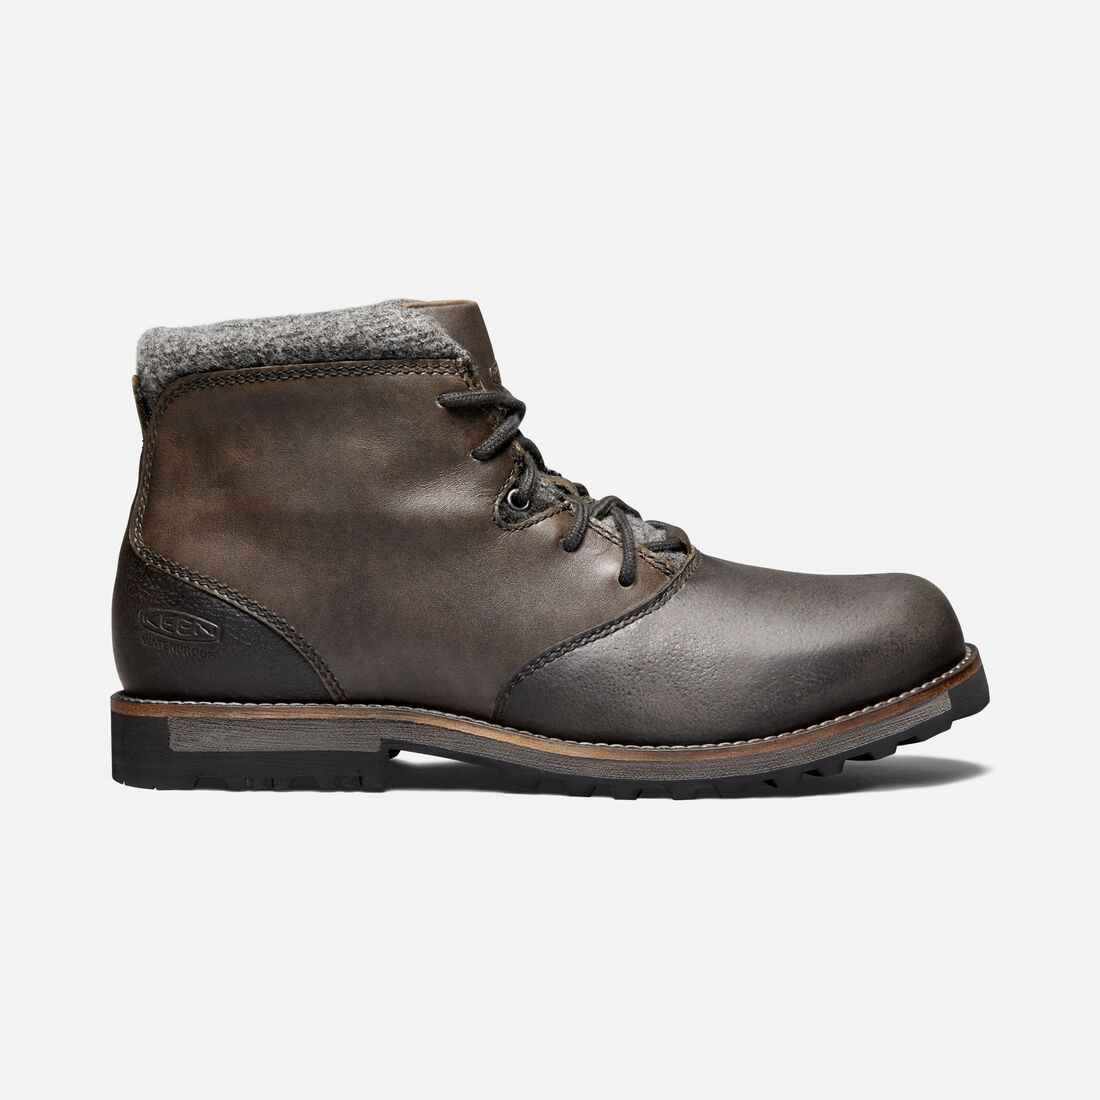 Men's 'The Slater' Waterproof Boot in Bock - large view.